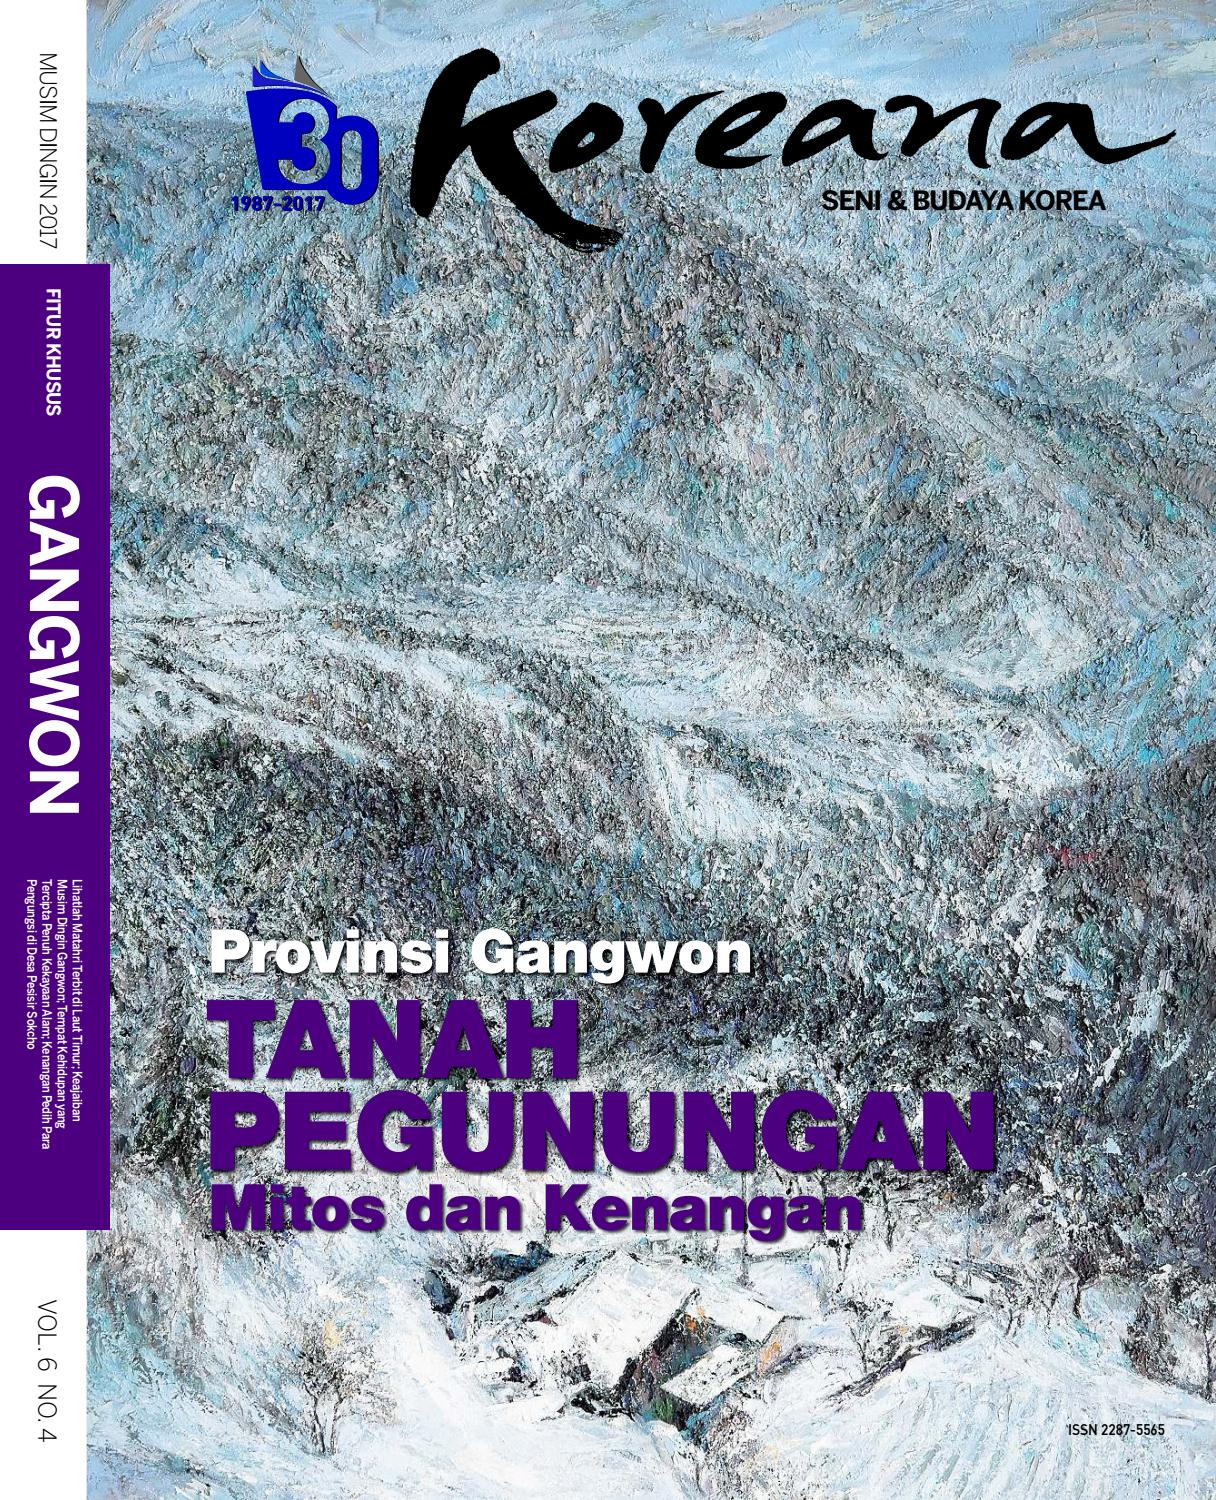 Koreana Winter 2017 Indonesian By The Korea Foundation Issuu